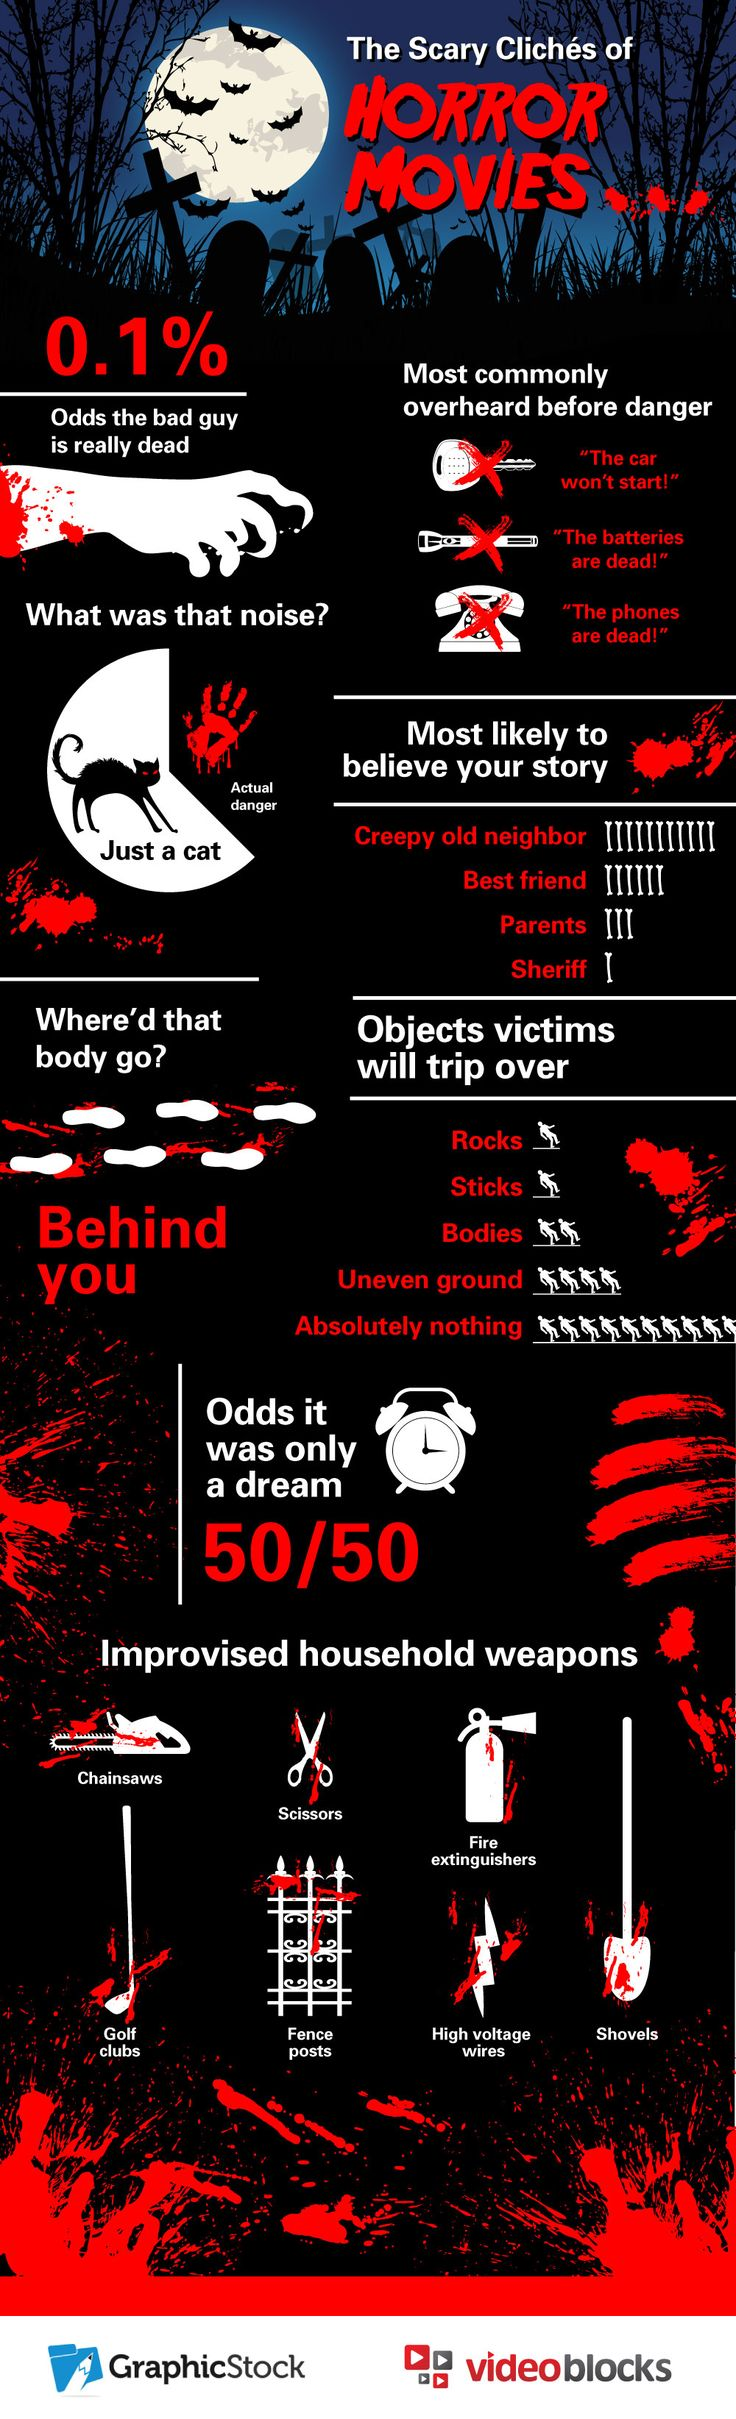 Scary Cliches of Horror Stories...just in time for Halloween!